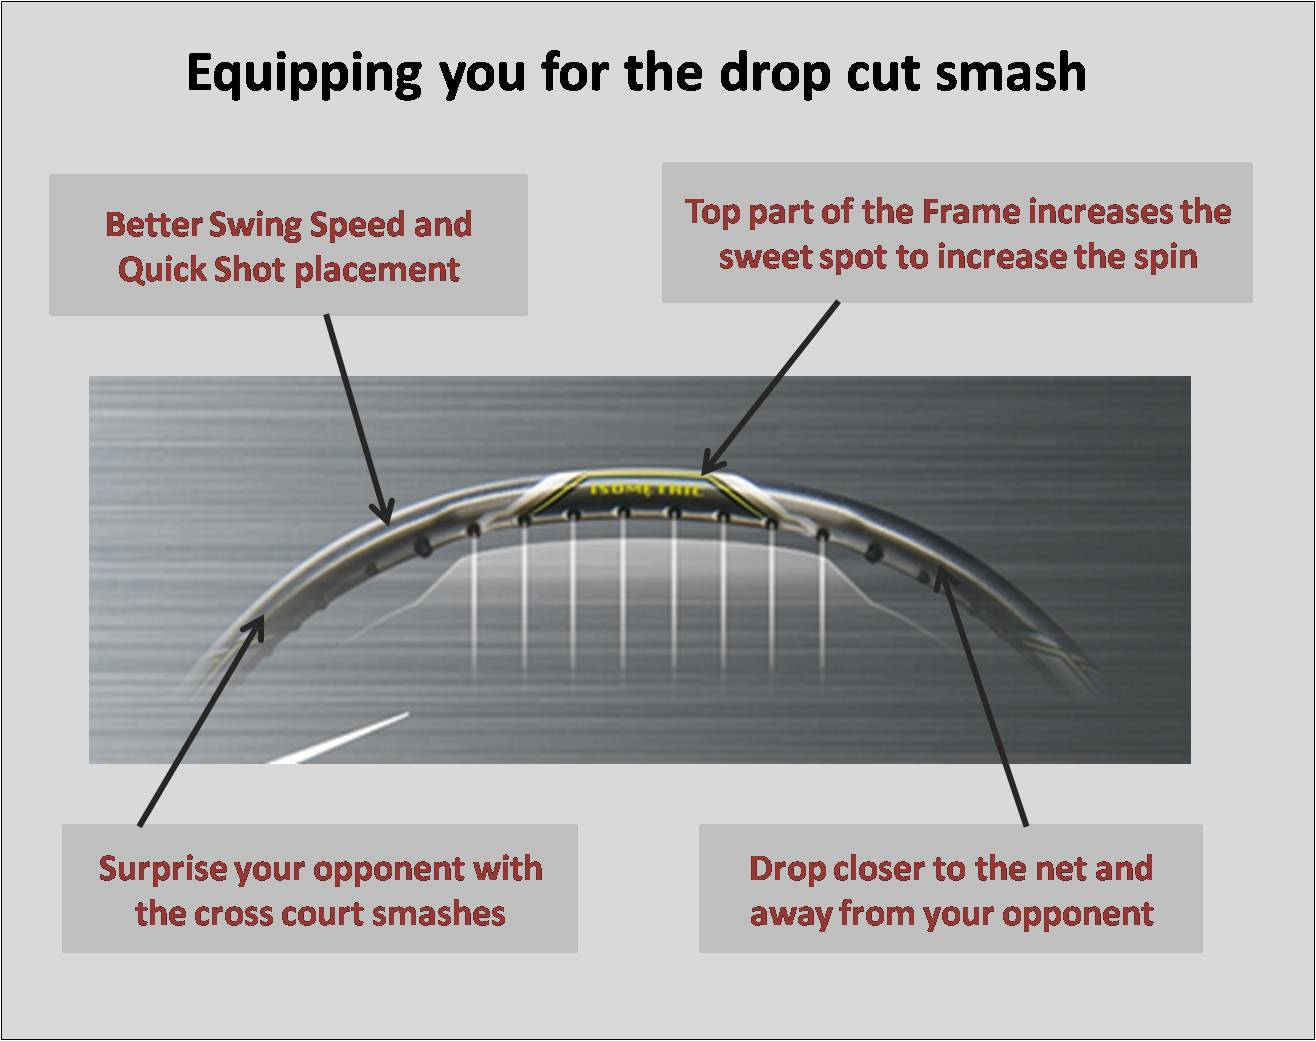 About Equipping you for the drop cut smash Nanoray 900 technology